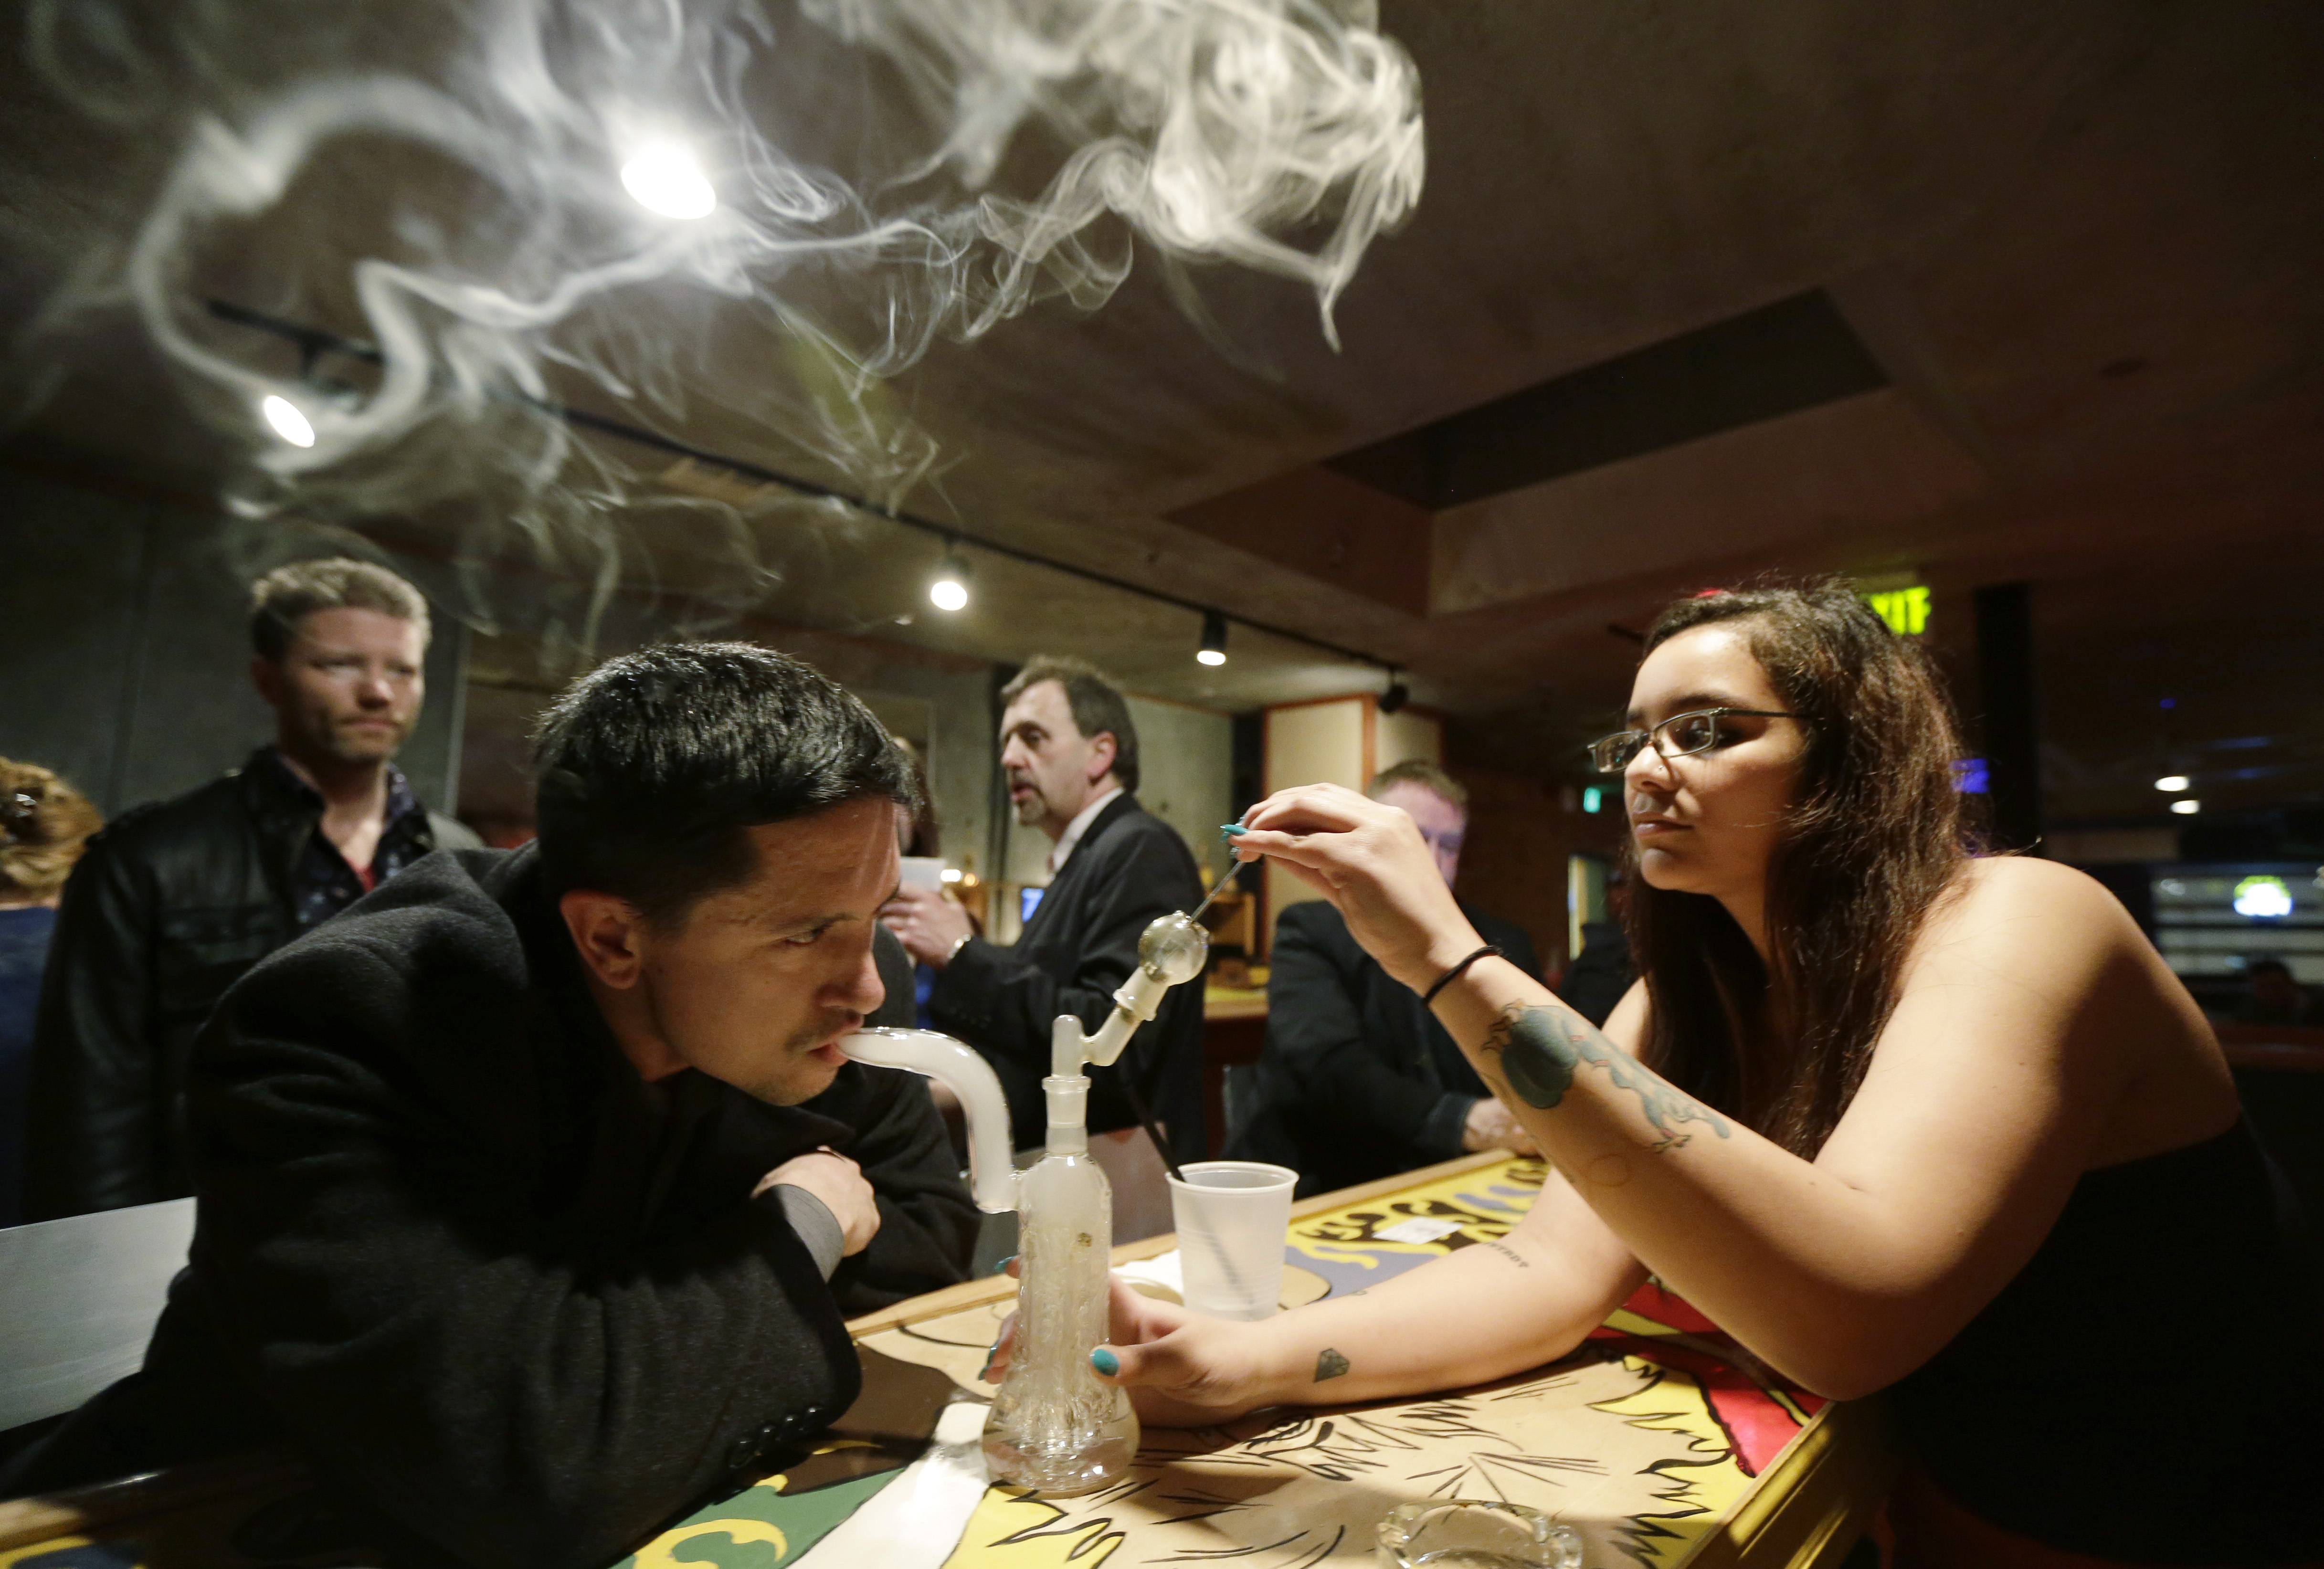 In this Saturday, March 2, 2013 file photo, John Connelly, left, inhales marijuana vapor just after midnight, with the help of bar worker Jenae DeCampo, right. Washington and Colorado became the first states to pass legislation legalizing marijuana use for adults over 21. Polls show that cigarette smoking is now less popular among teens than marijuana.